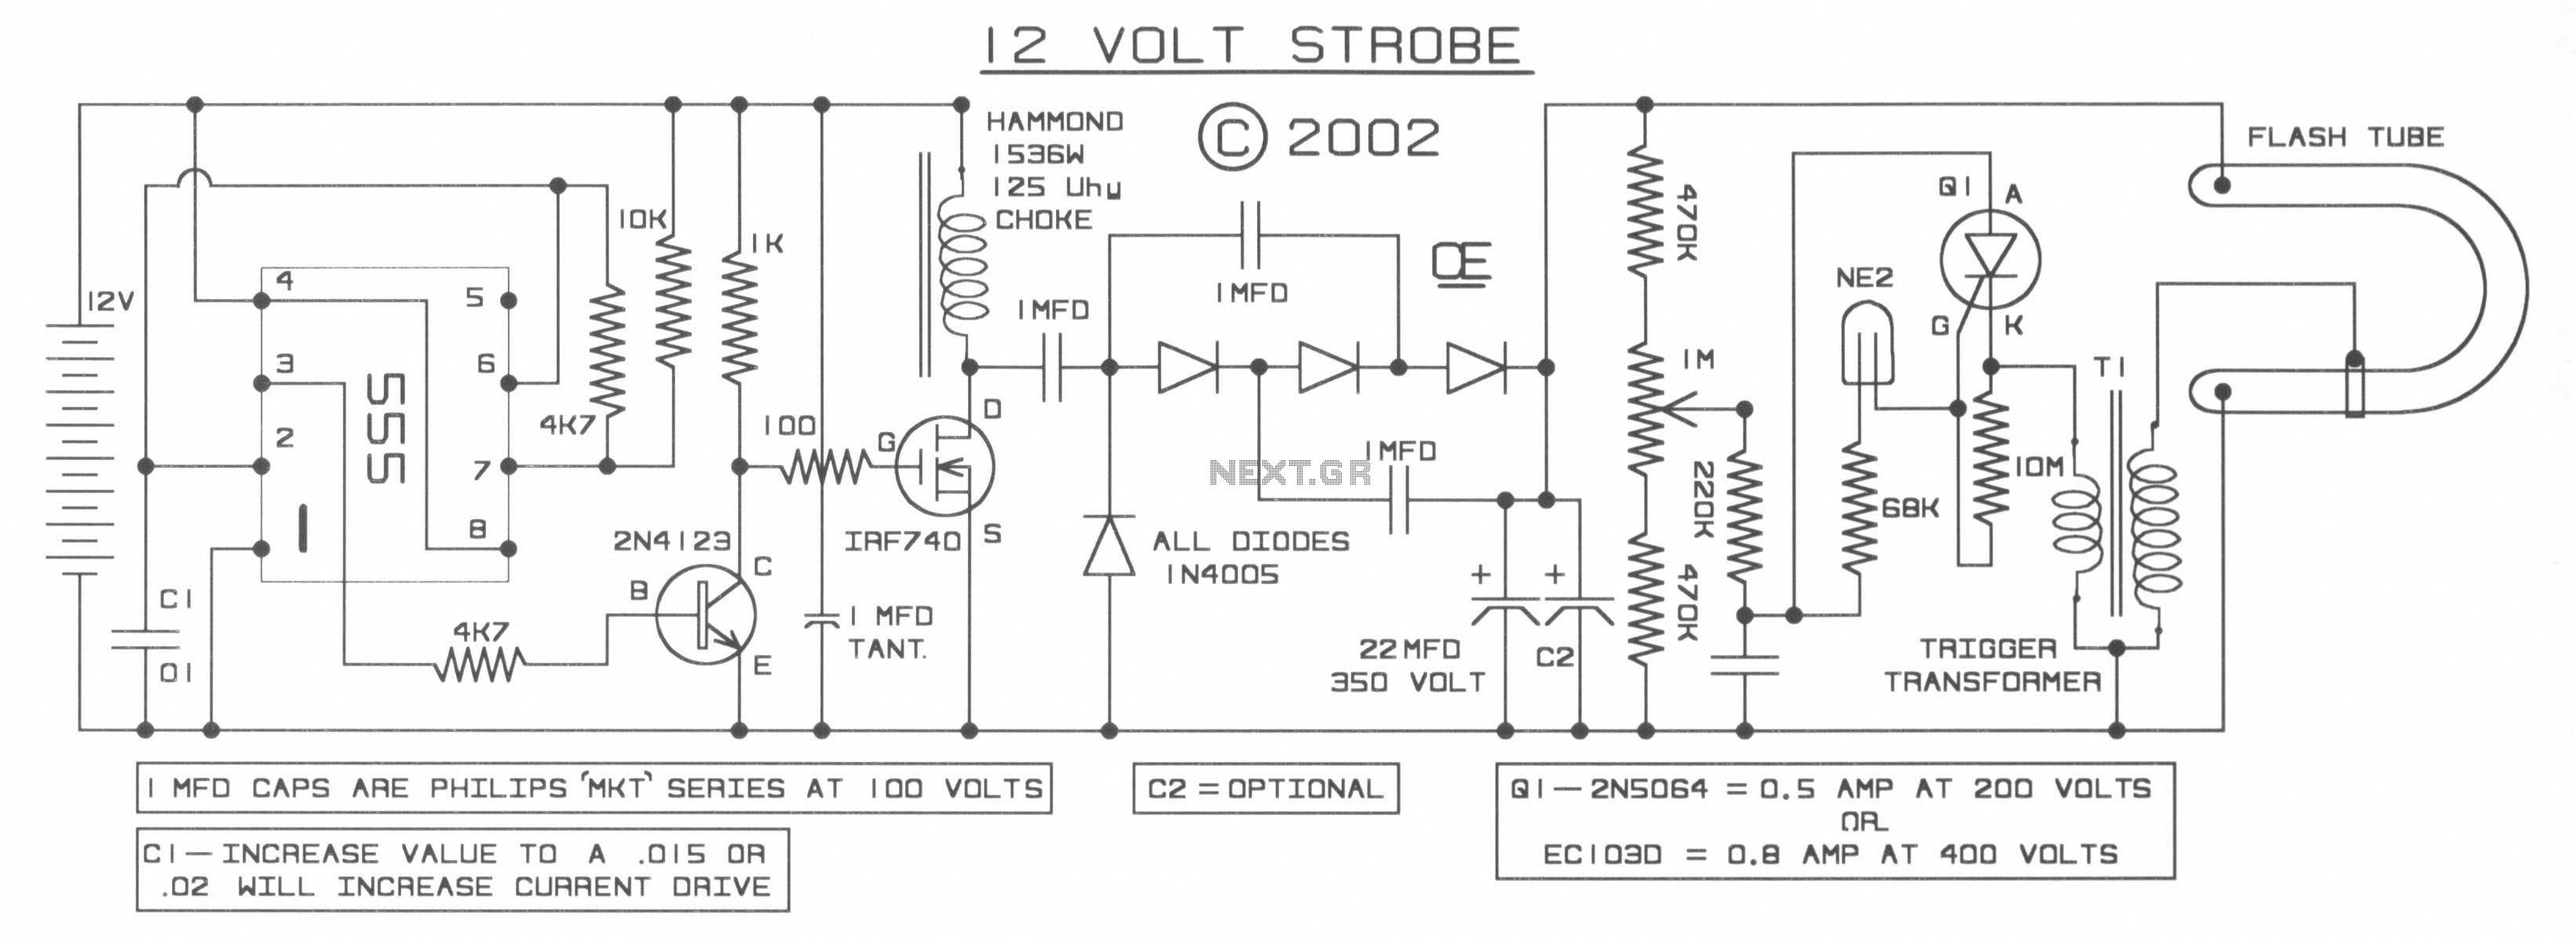 1222-54d1222 Quench Tube Circuit Schematic Diagram Strobe on